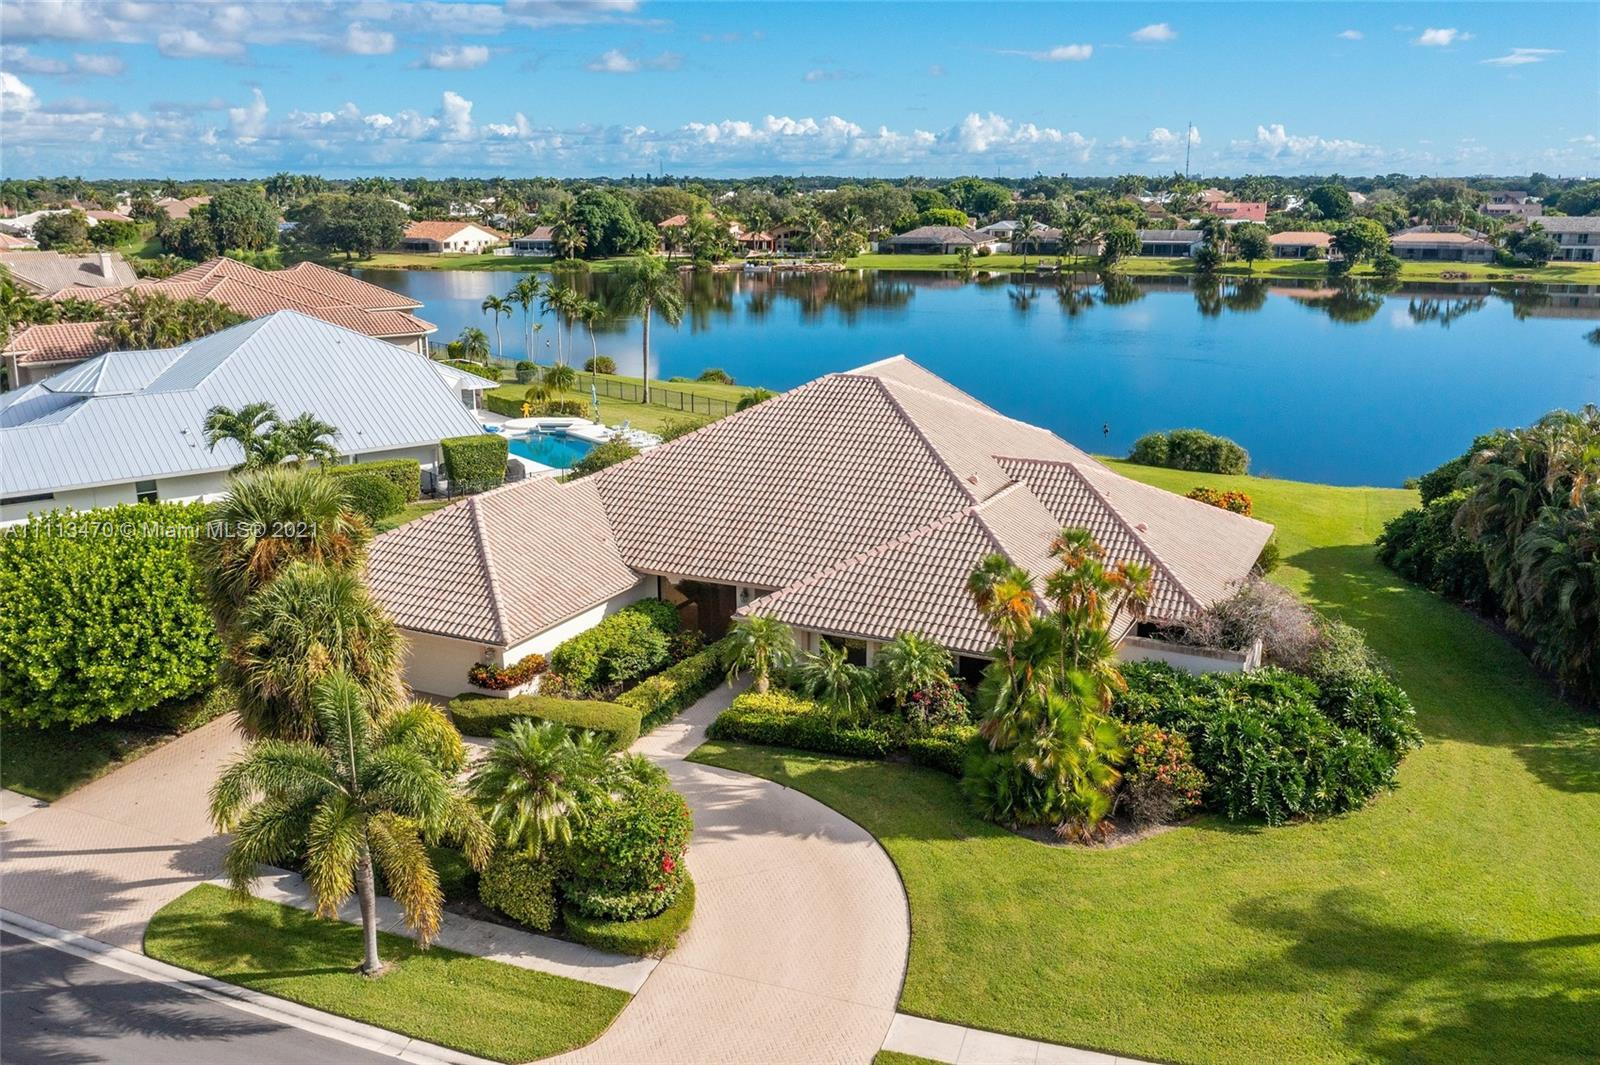 This is what country club dreams are made of in the heart of Boca Raton! Welcome to your own paradis